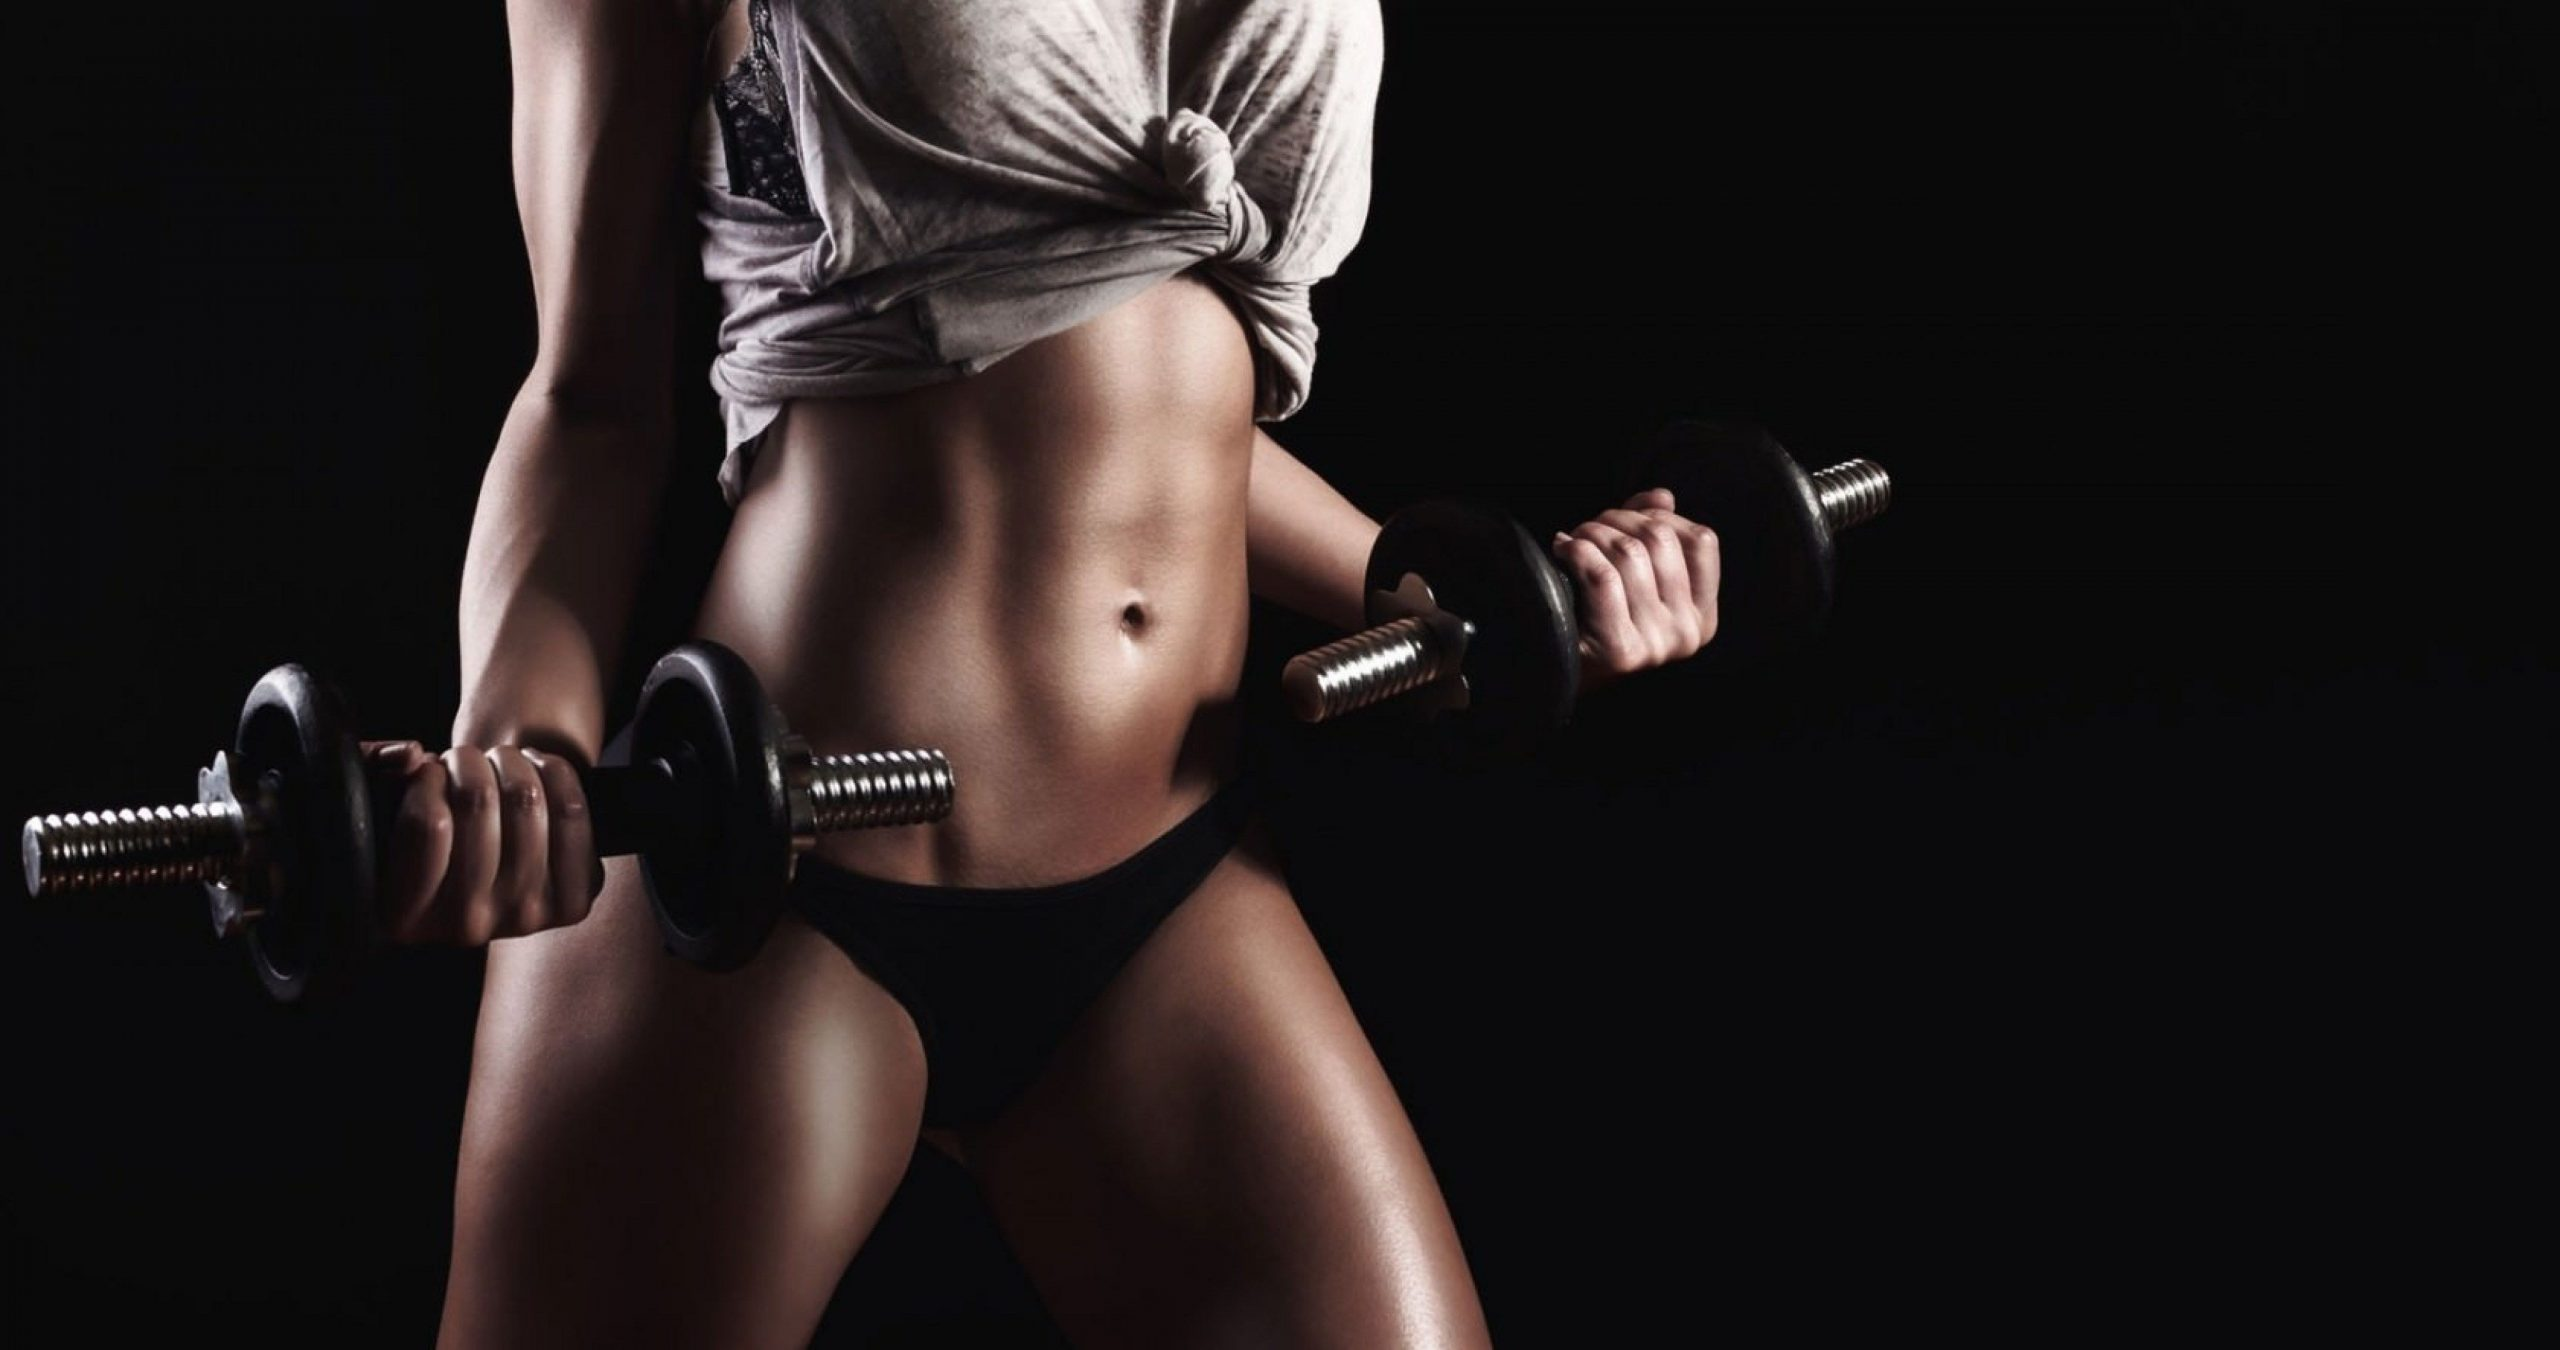 Weight Loss At Home – Following Is A Full-Body Workout Without Weights